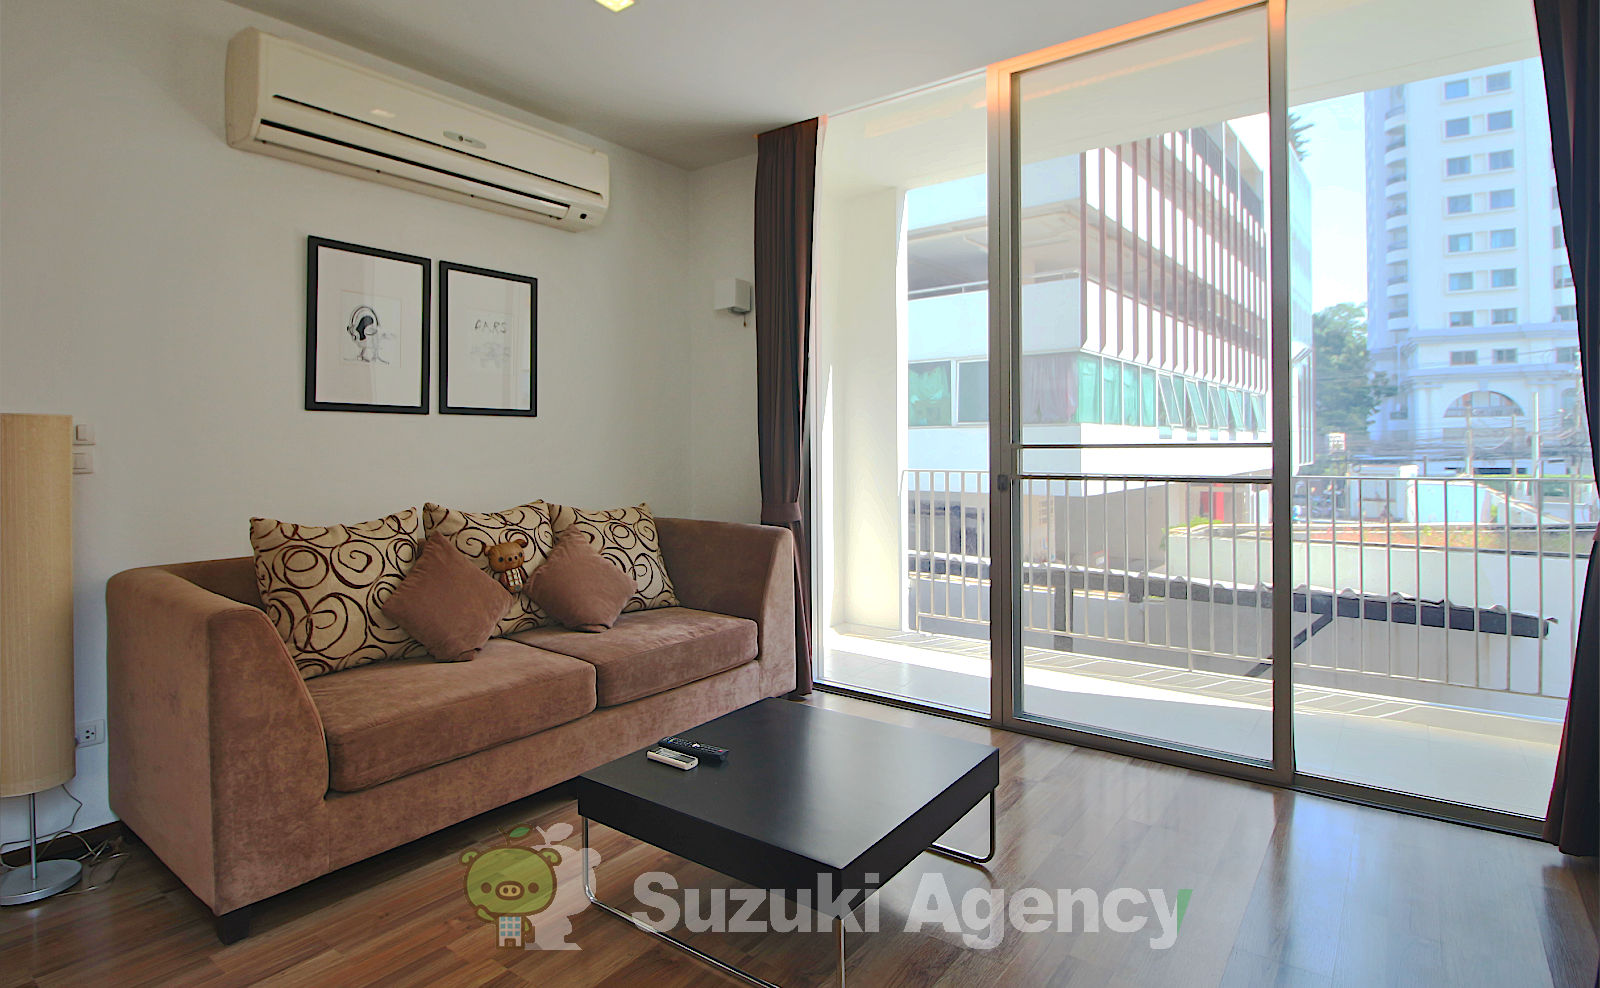 39 Residence:1Bed Room Photos No.3